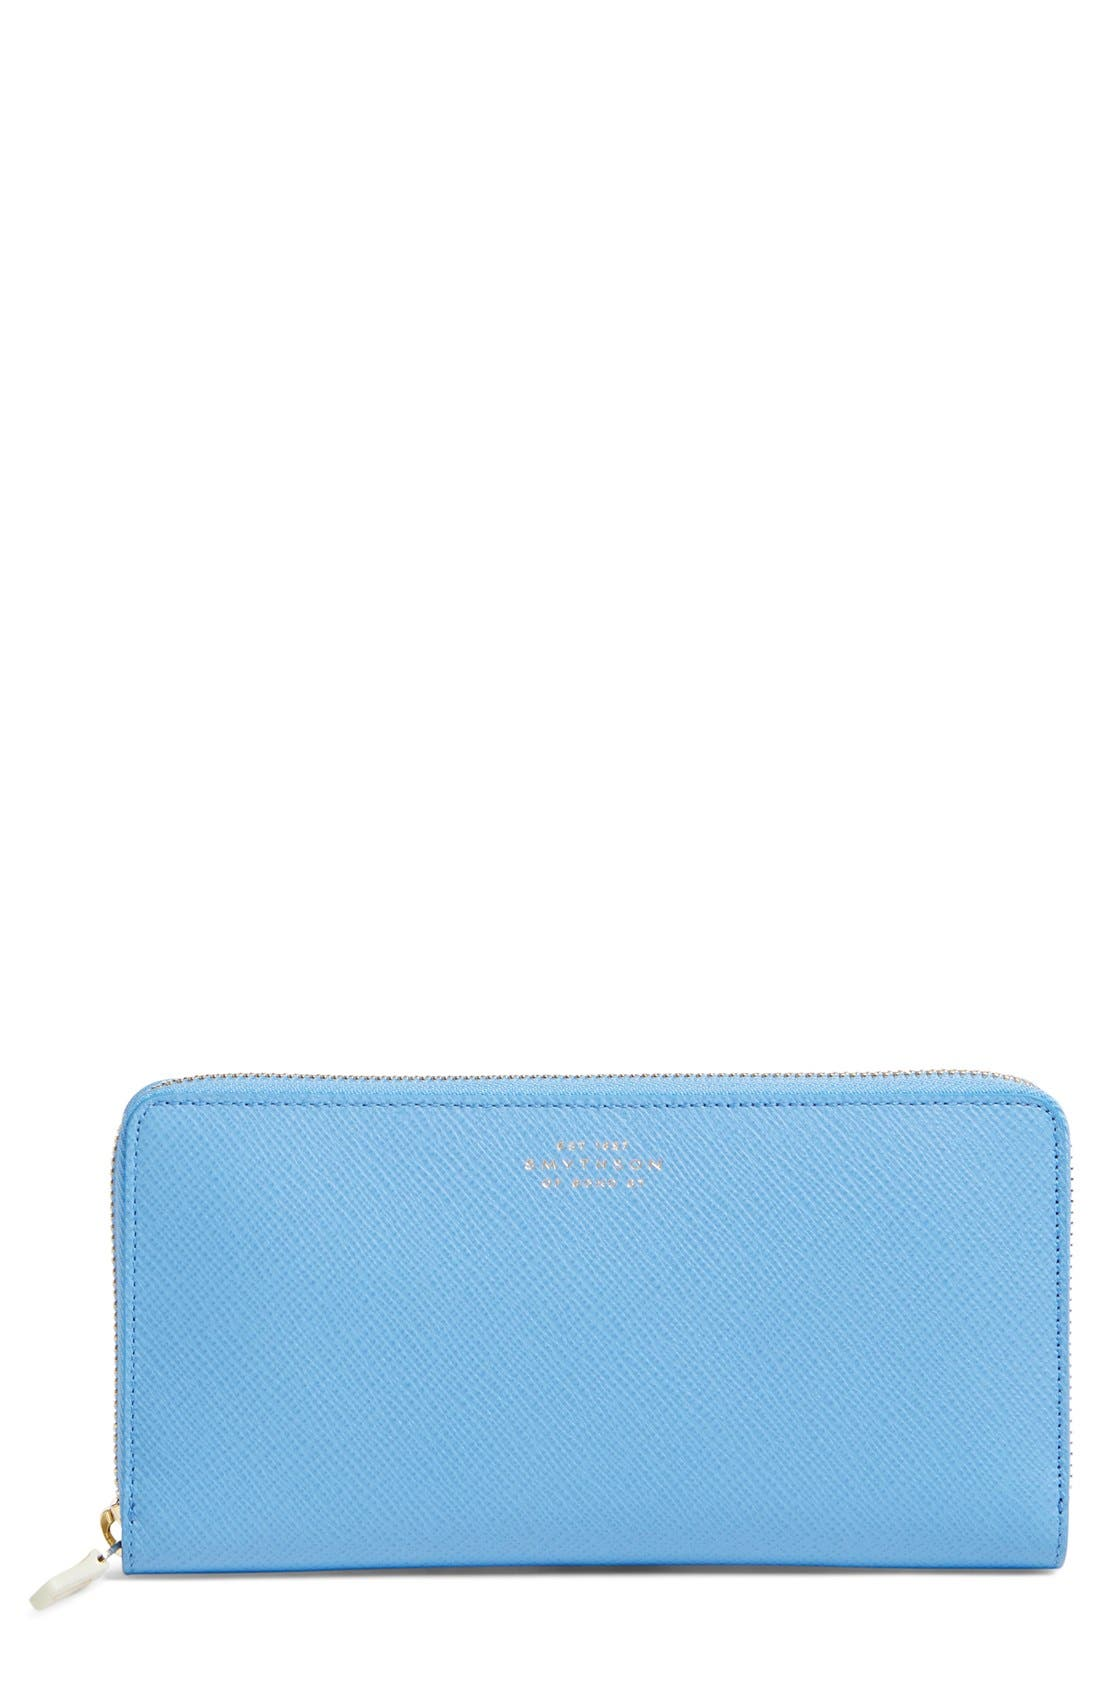 Smythson 'Large Panama' Zip Around Wallet